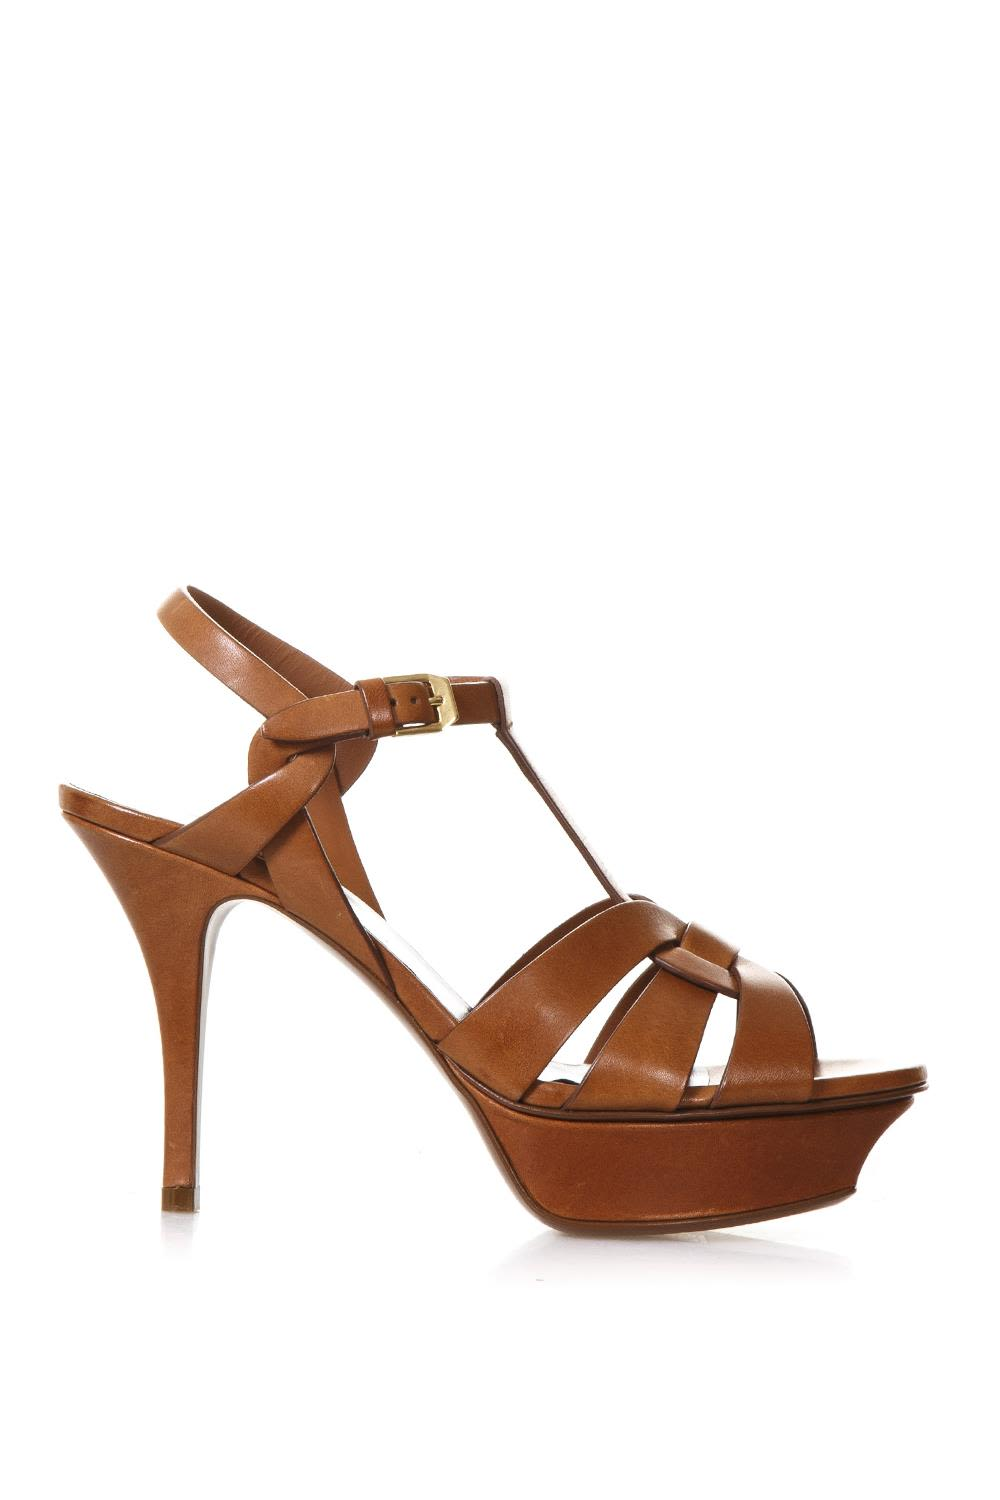 a07205ae6ff9 Saint Laurent 105mm Tribute Leather Sandals - Amber ...